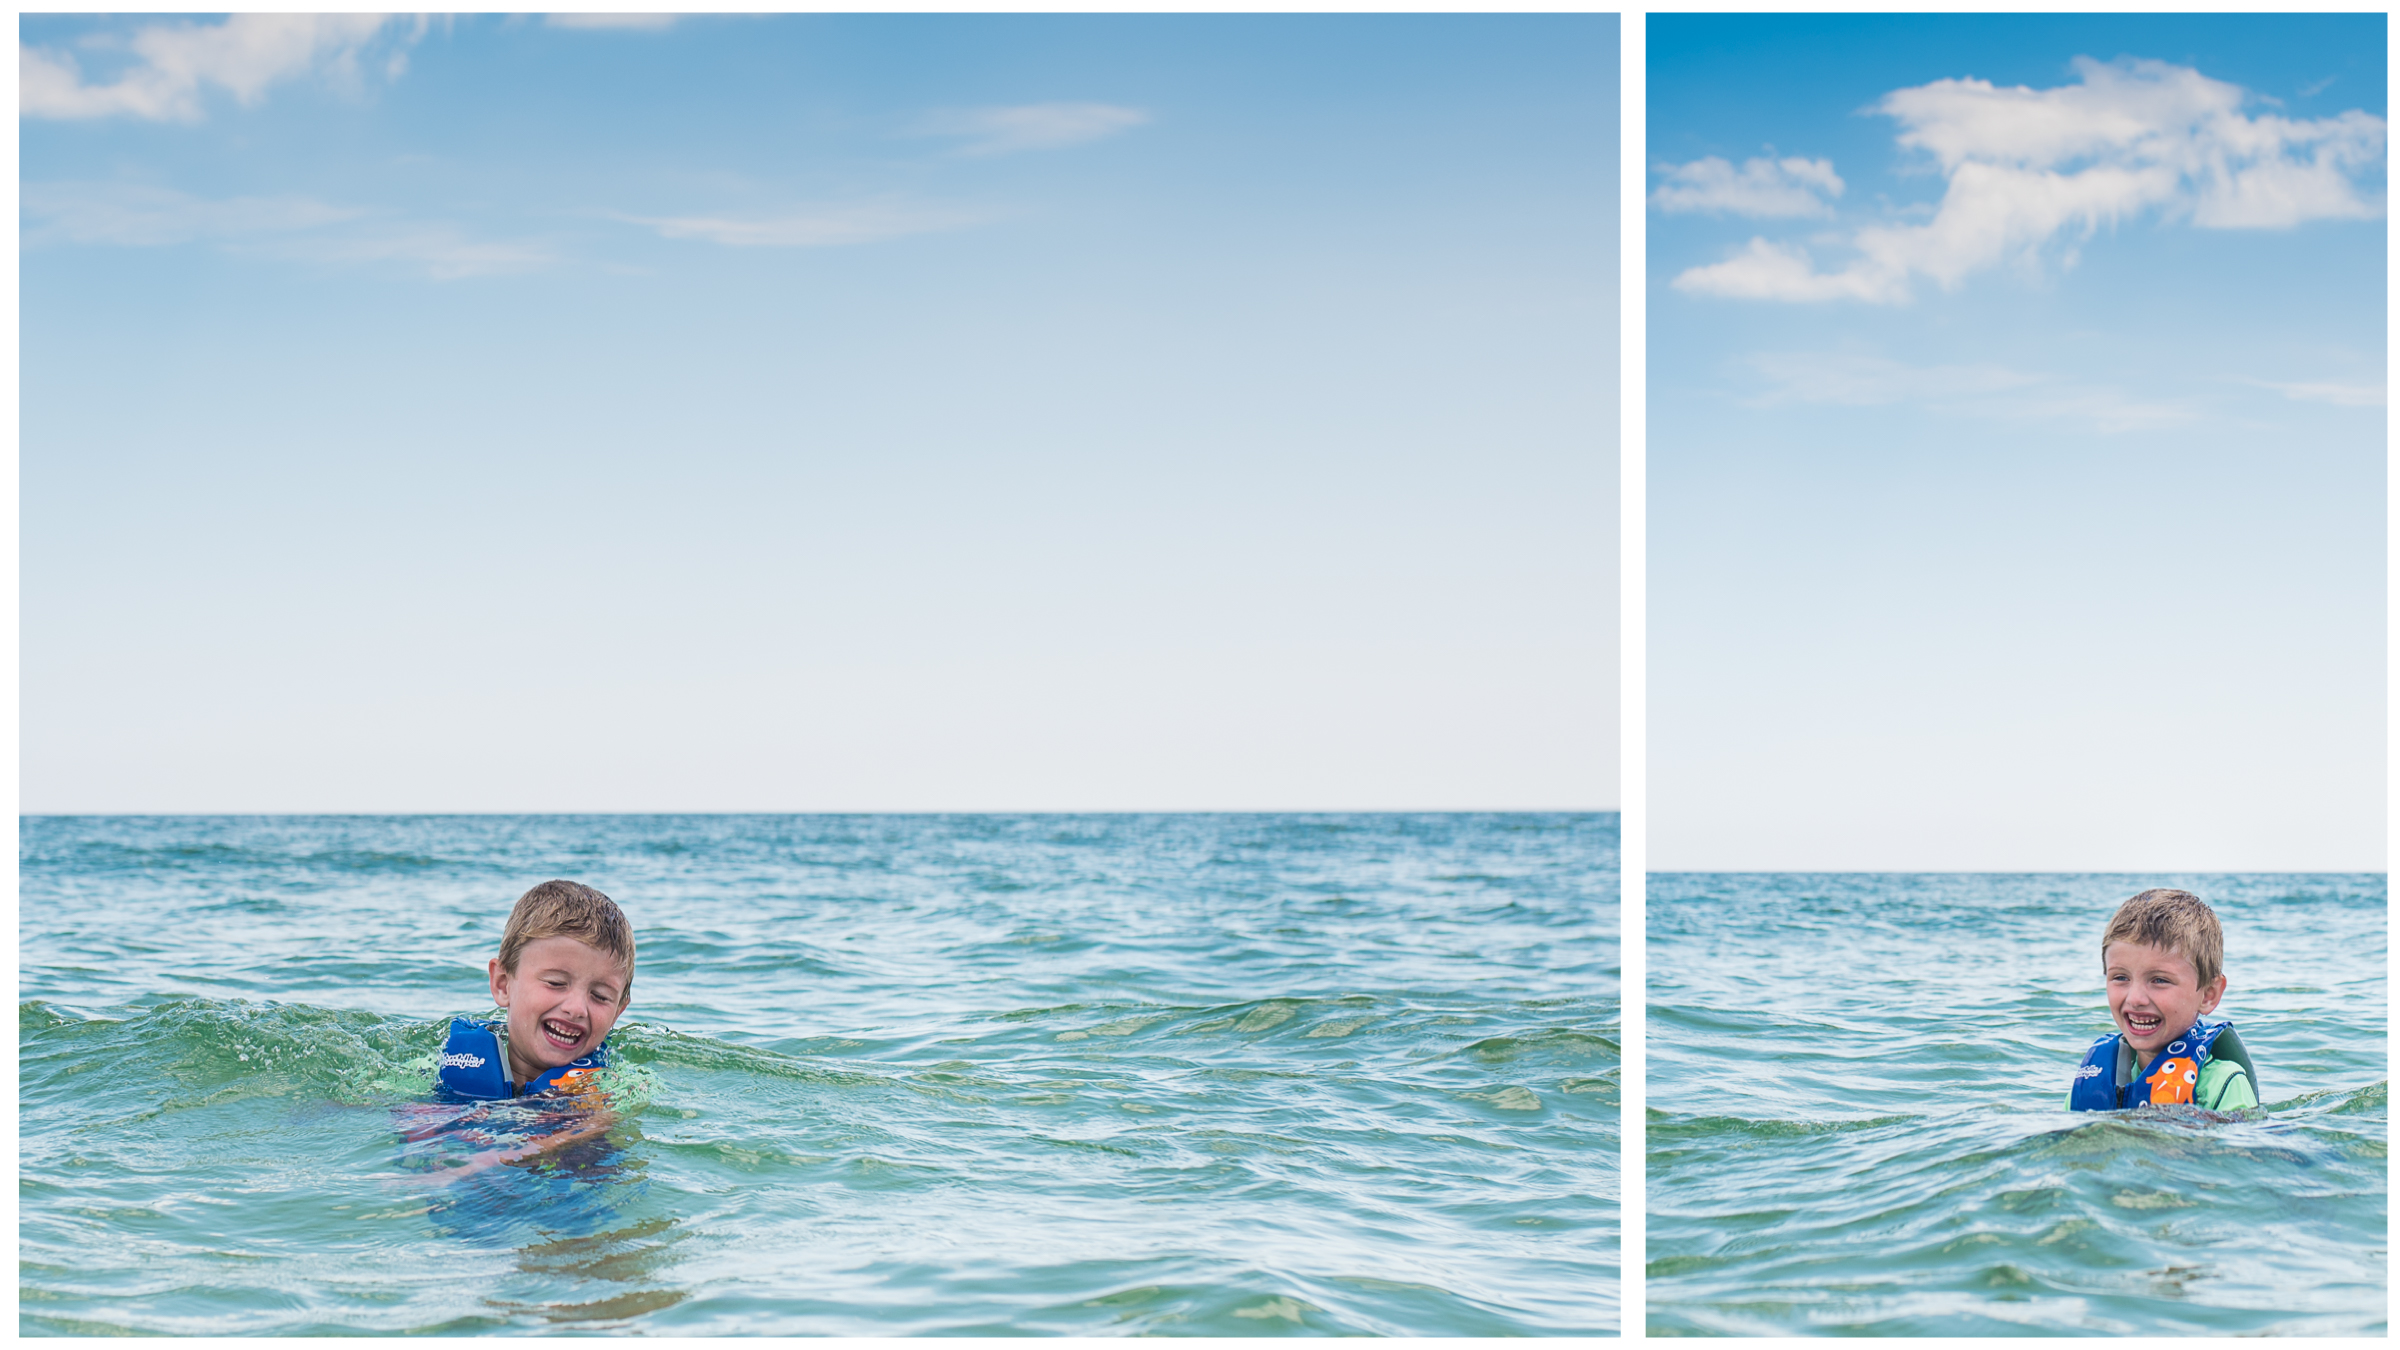 The ocean is Joshua's happy place.